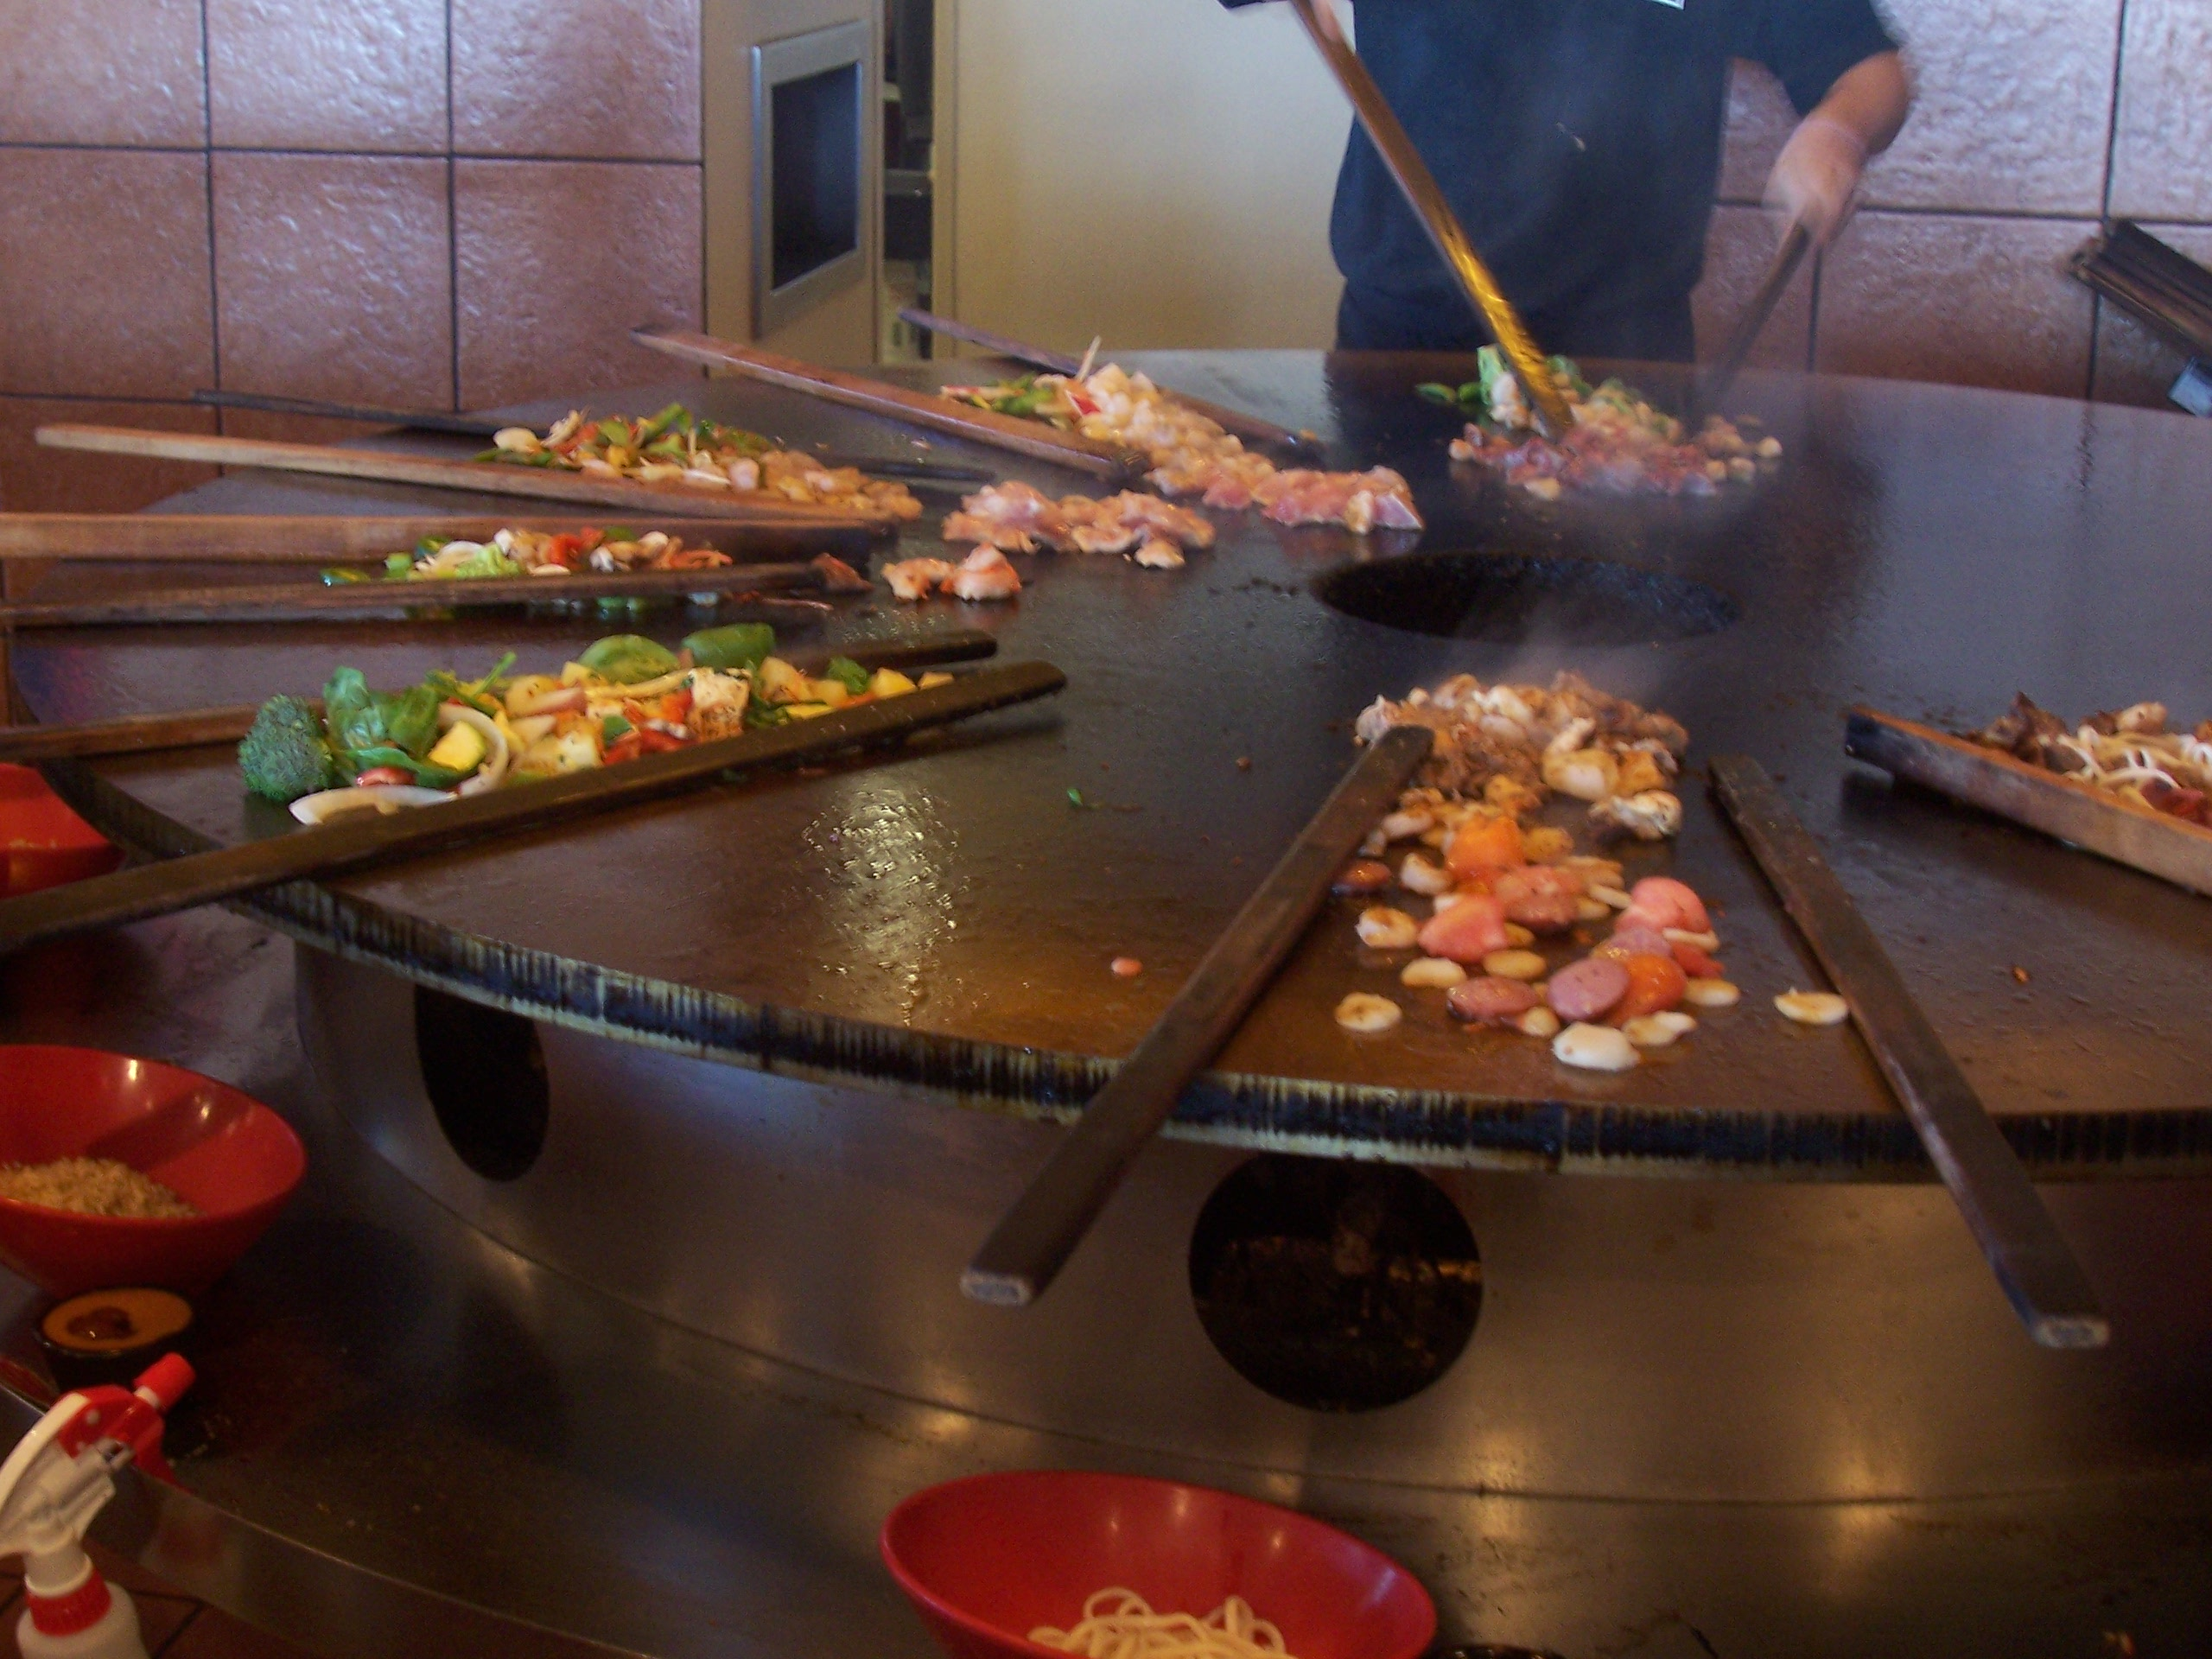 mongolian grill analysis Huhot mongolian grill restaurants brand is studied in terms of its swot analysis, competitors segmentation, targeting and positioning (stp) have also been covered along with usp and tagline.